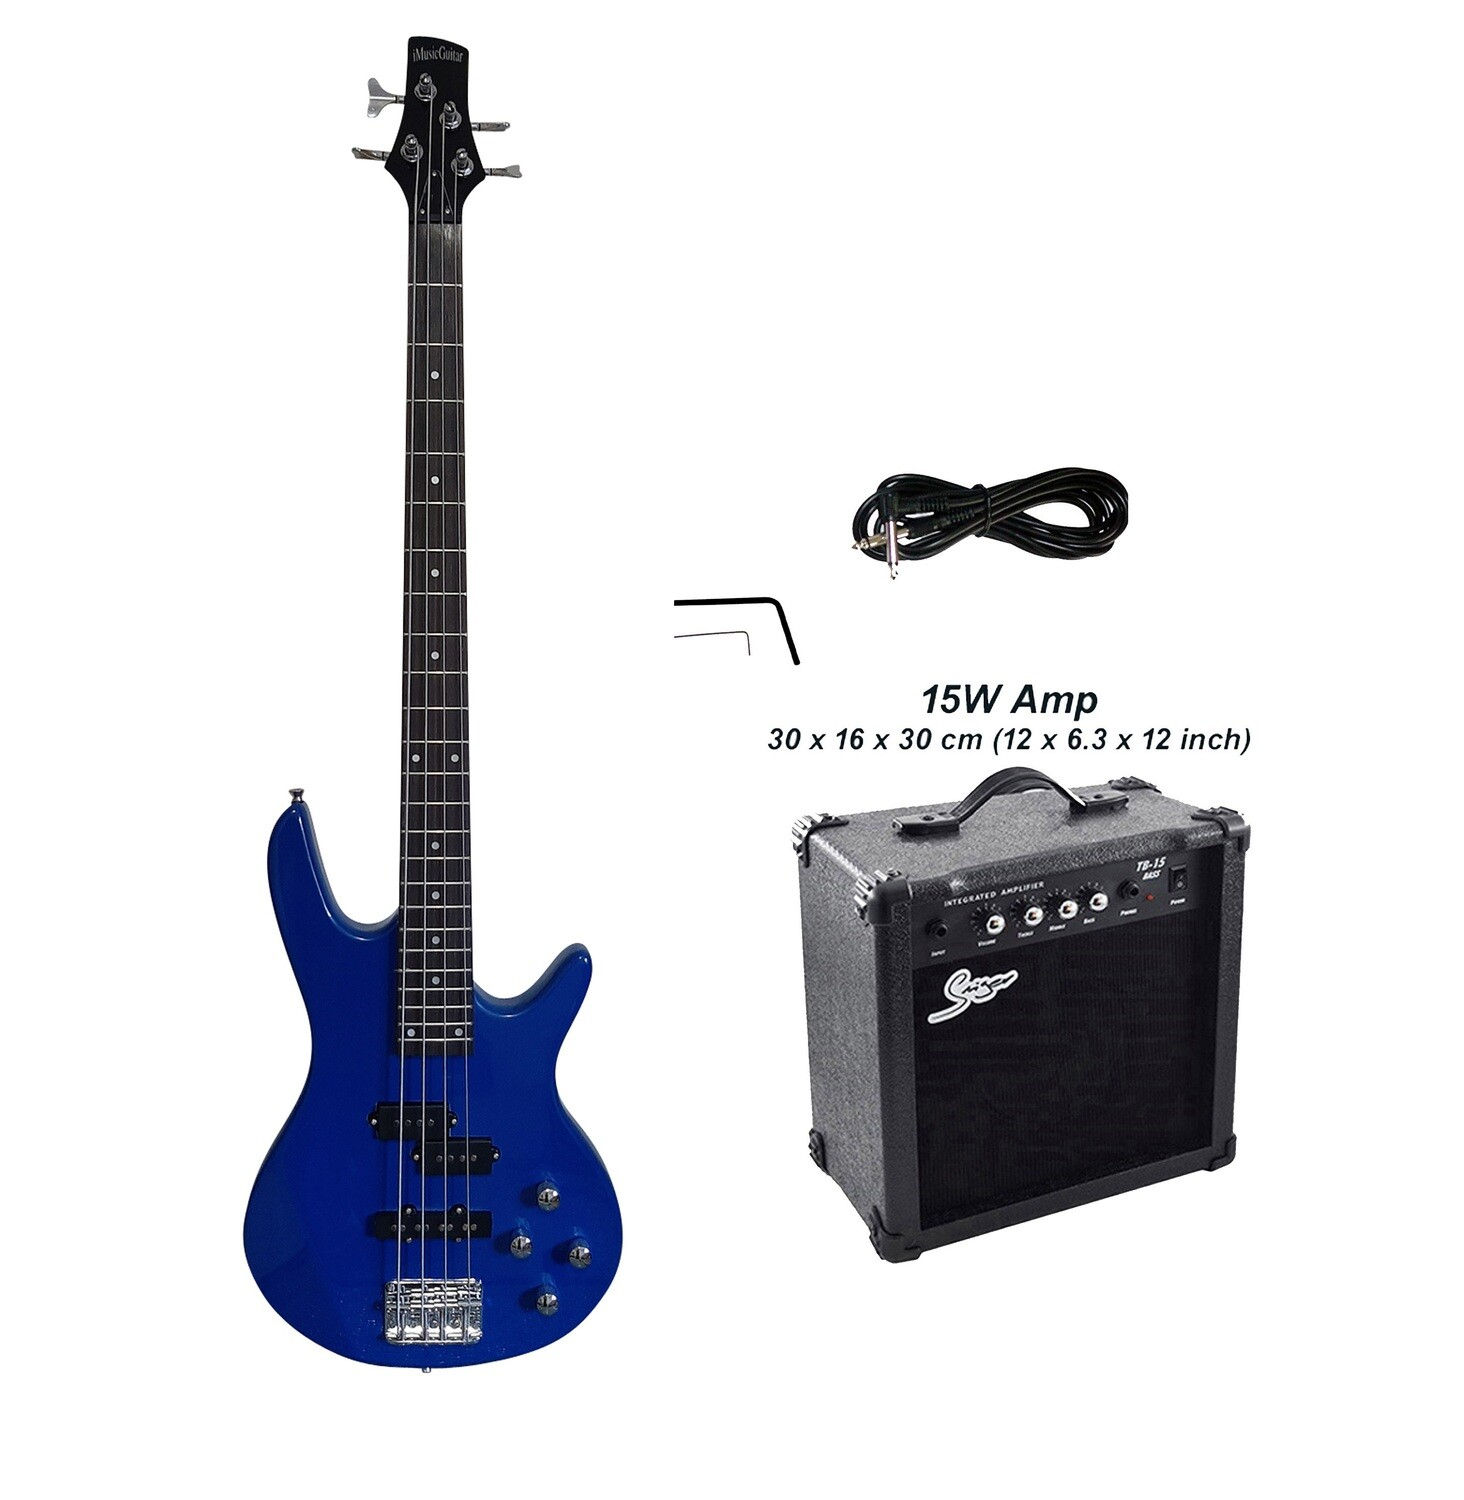 Bass Guitar 4 String Blue iMEB886PKT with 15W Amp Package